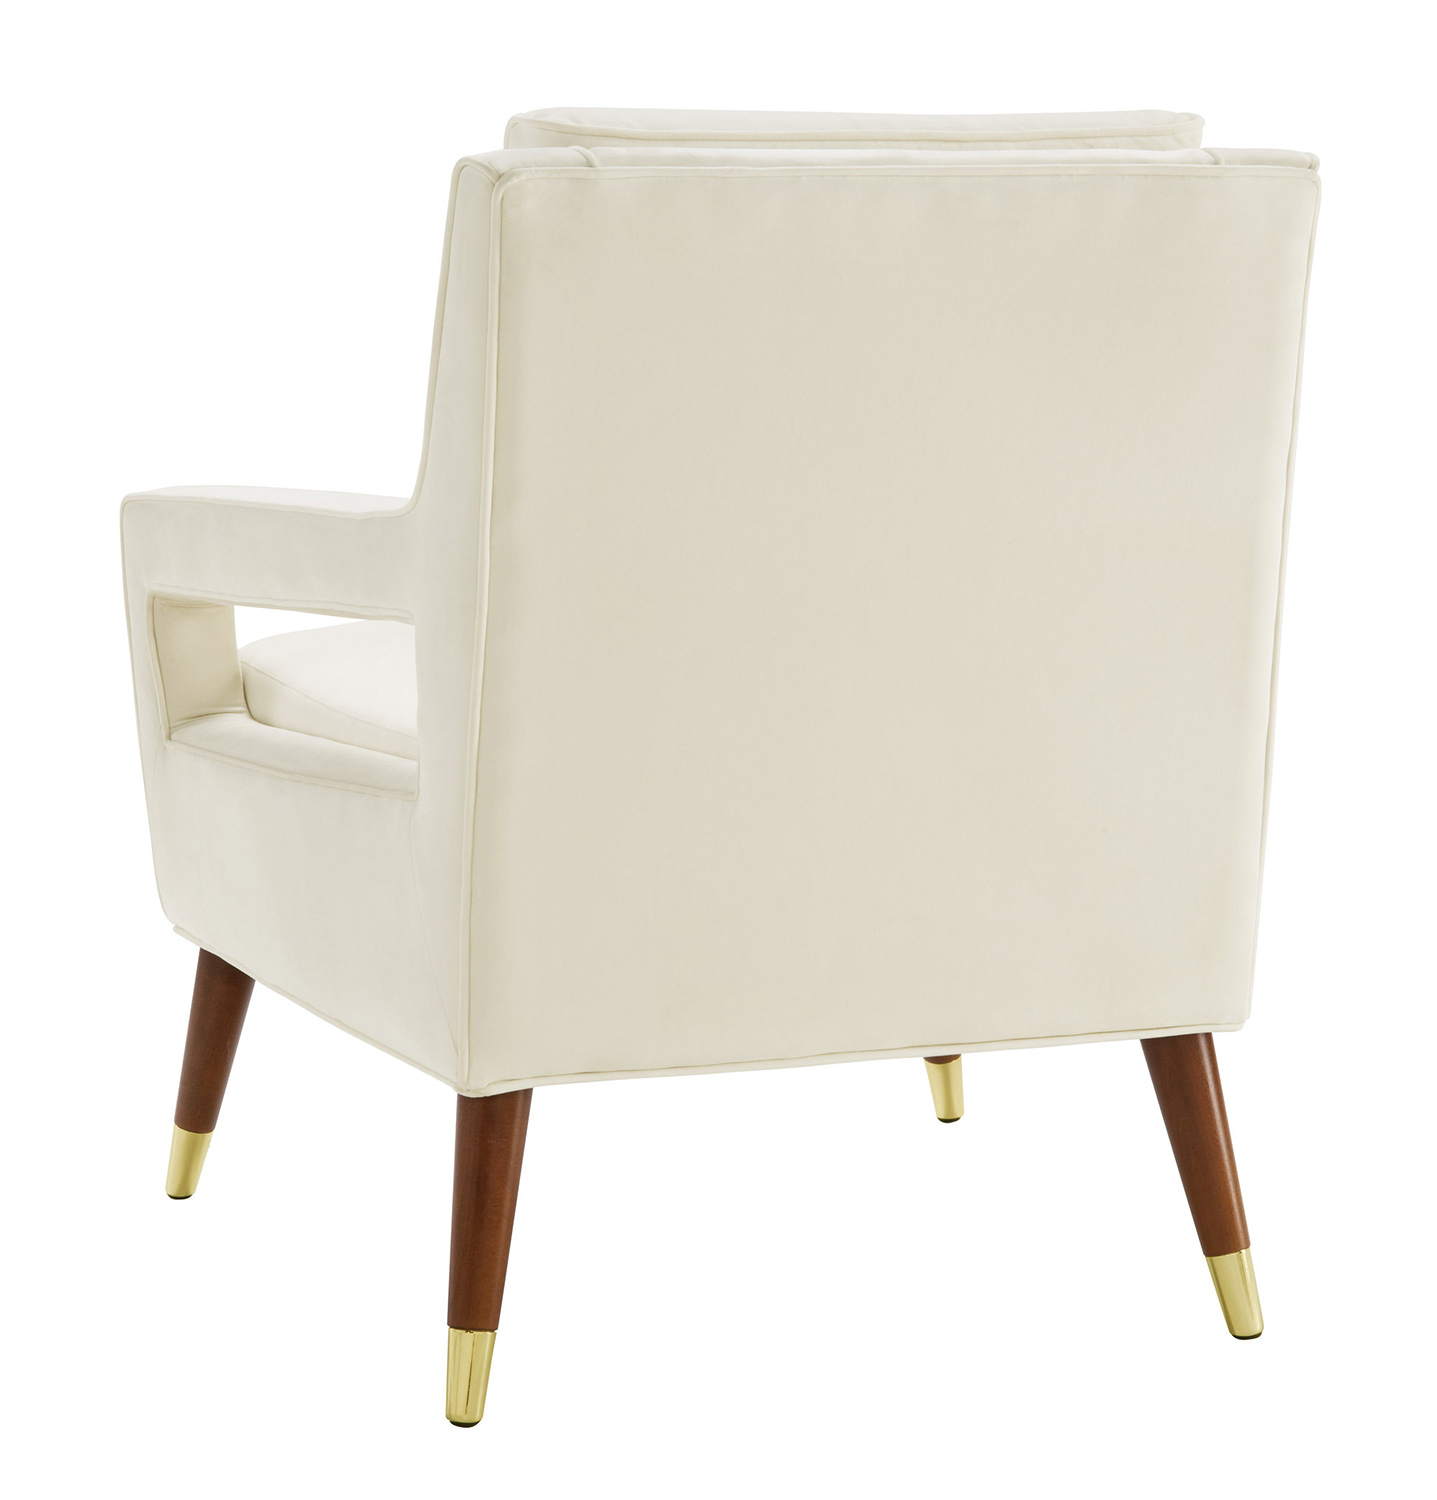 TOV Furniture Draper Chair - Cream